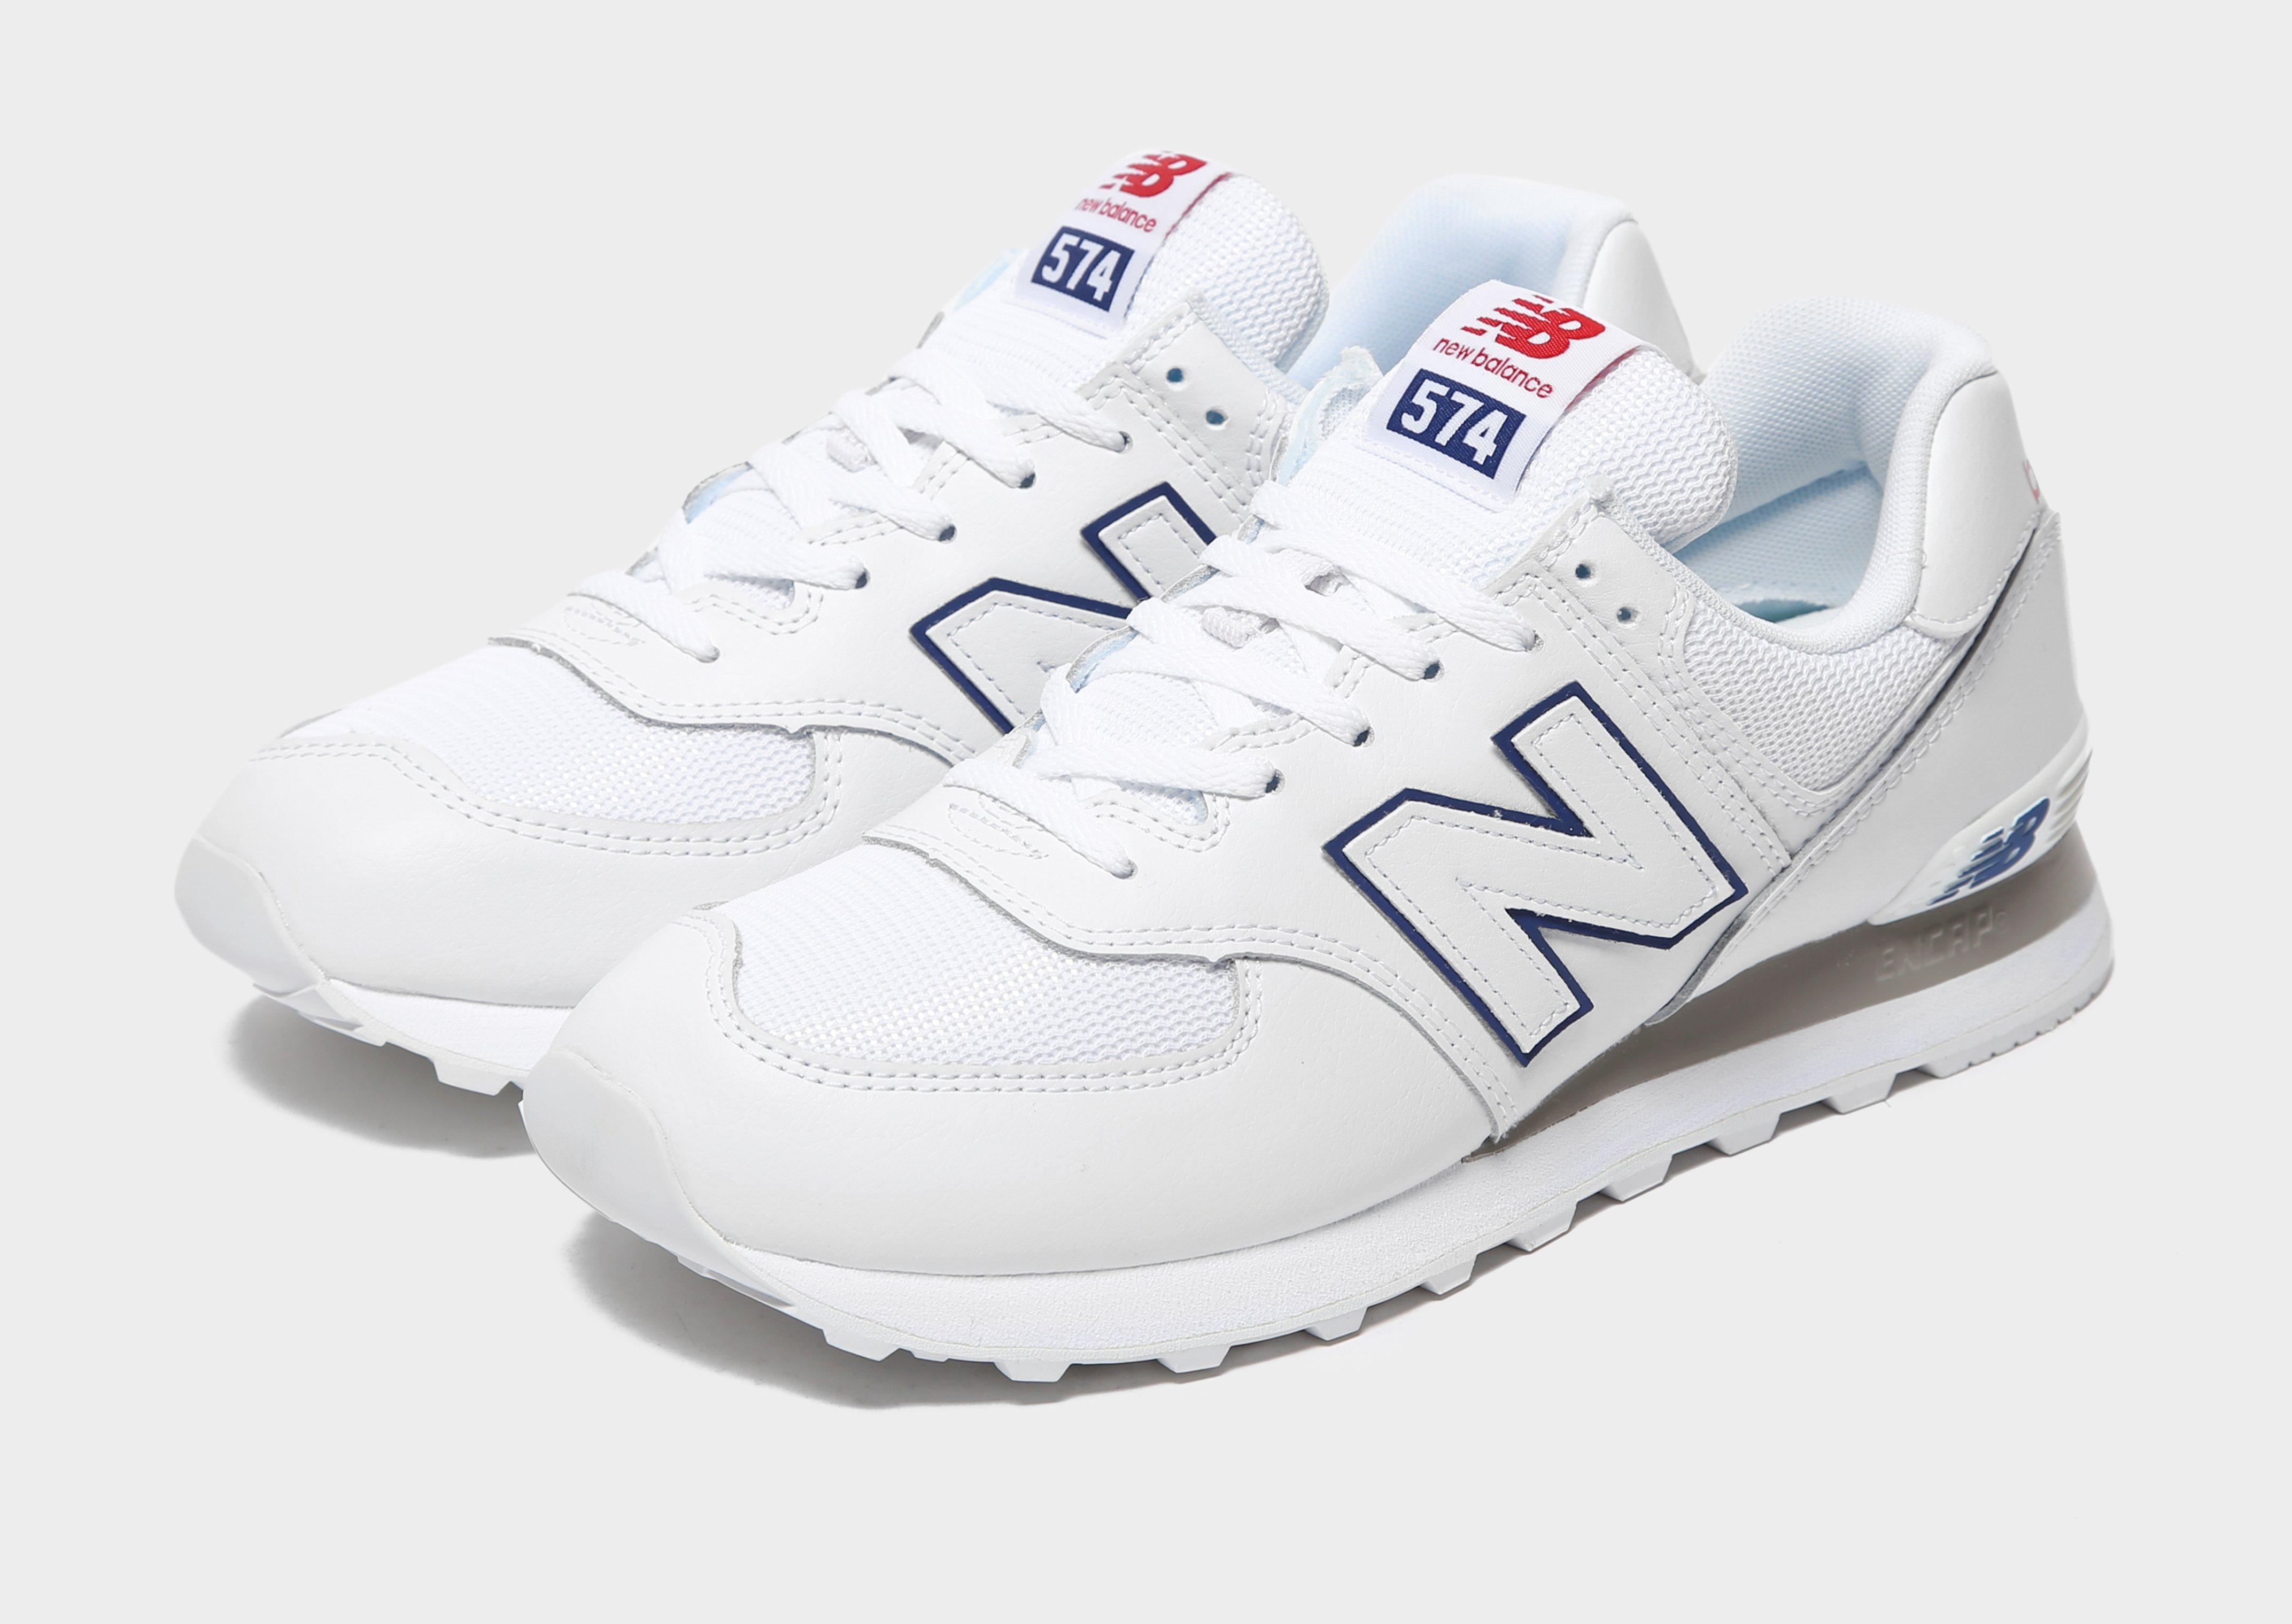 nb 574 homme blanche cheap nike shoes online